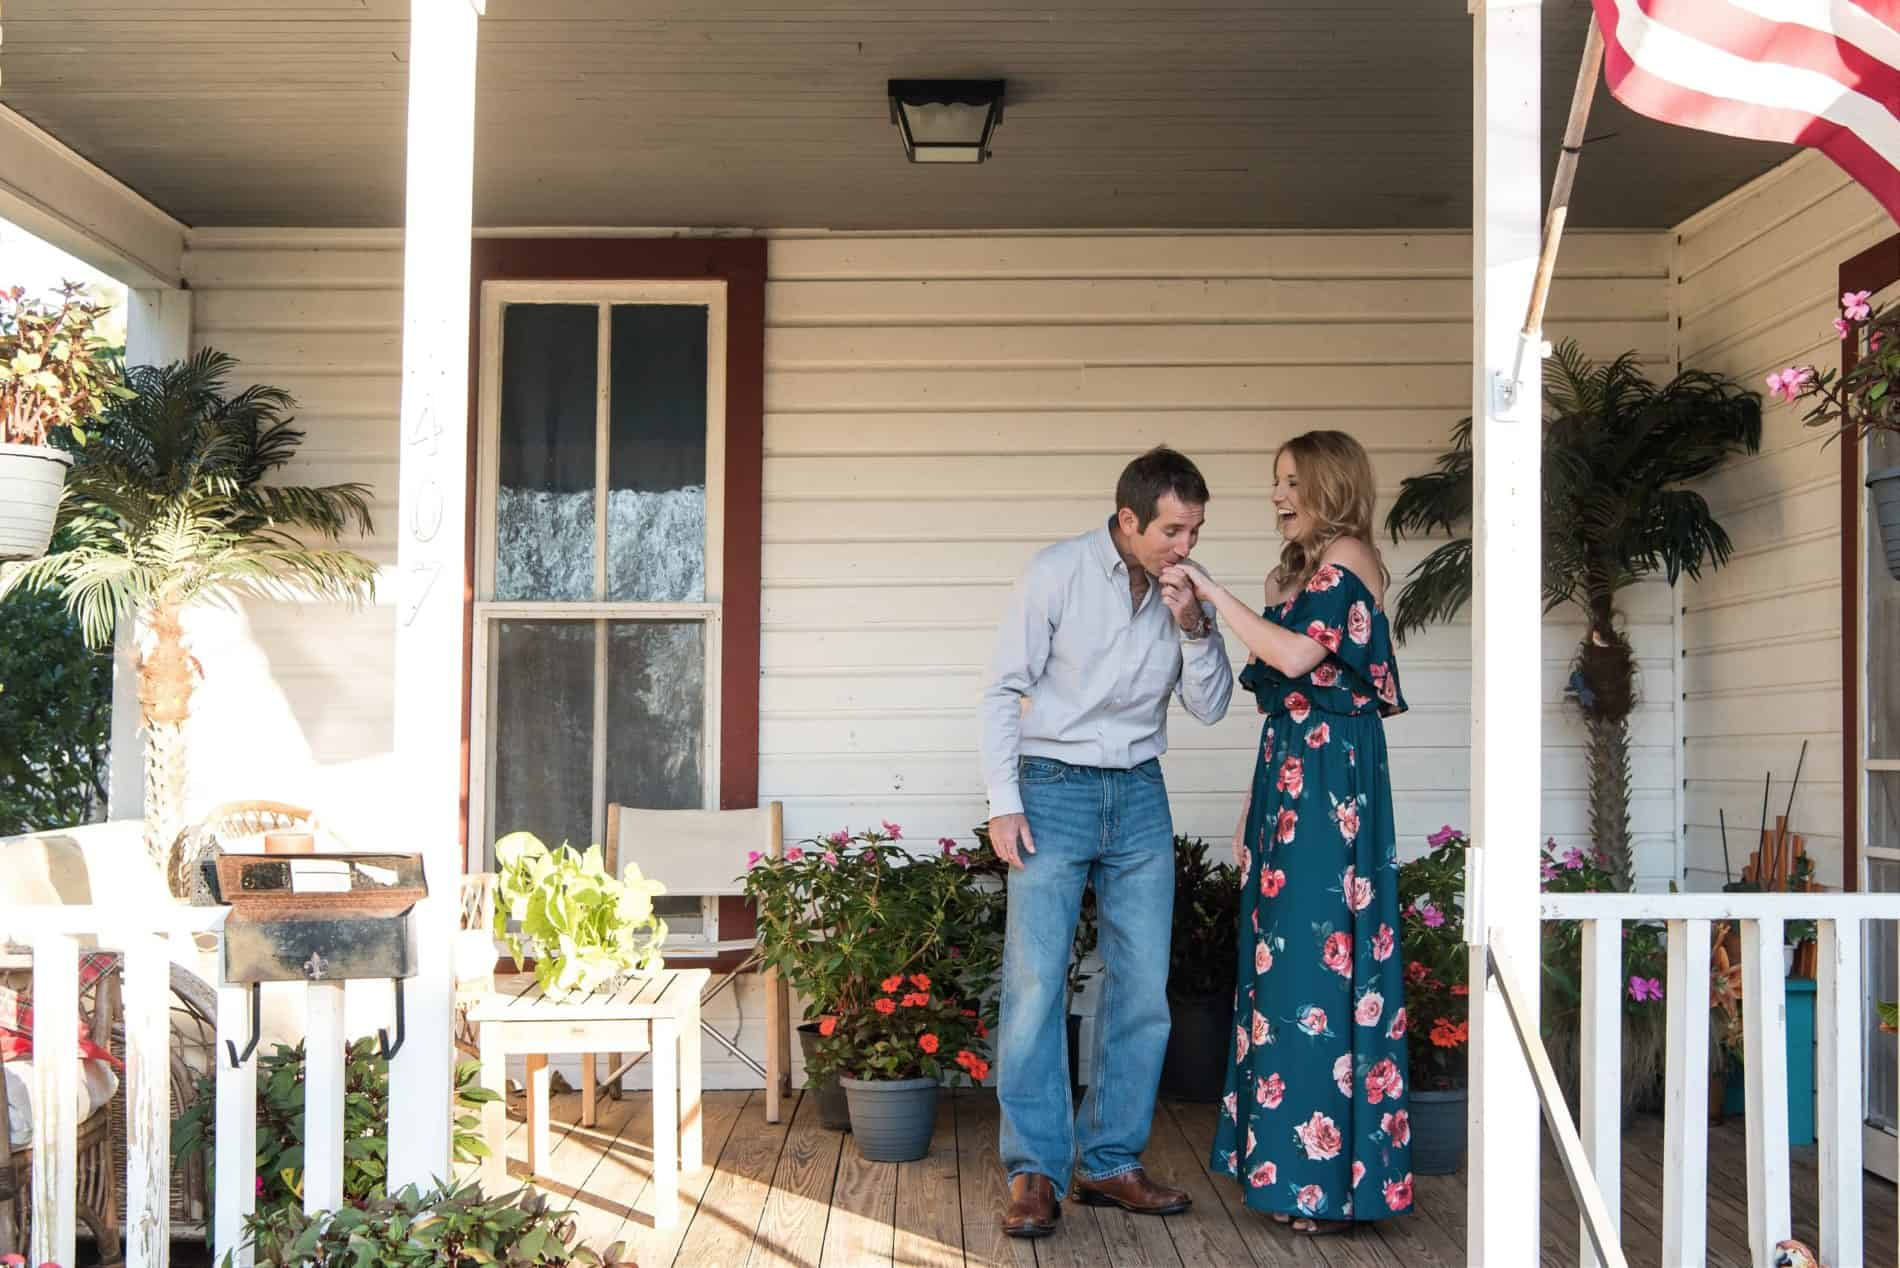 Downtown Ocala Engagement Photos - Oh So Romantic in December